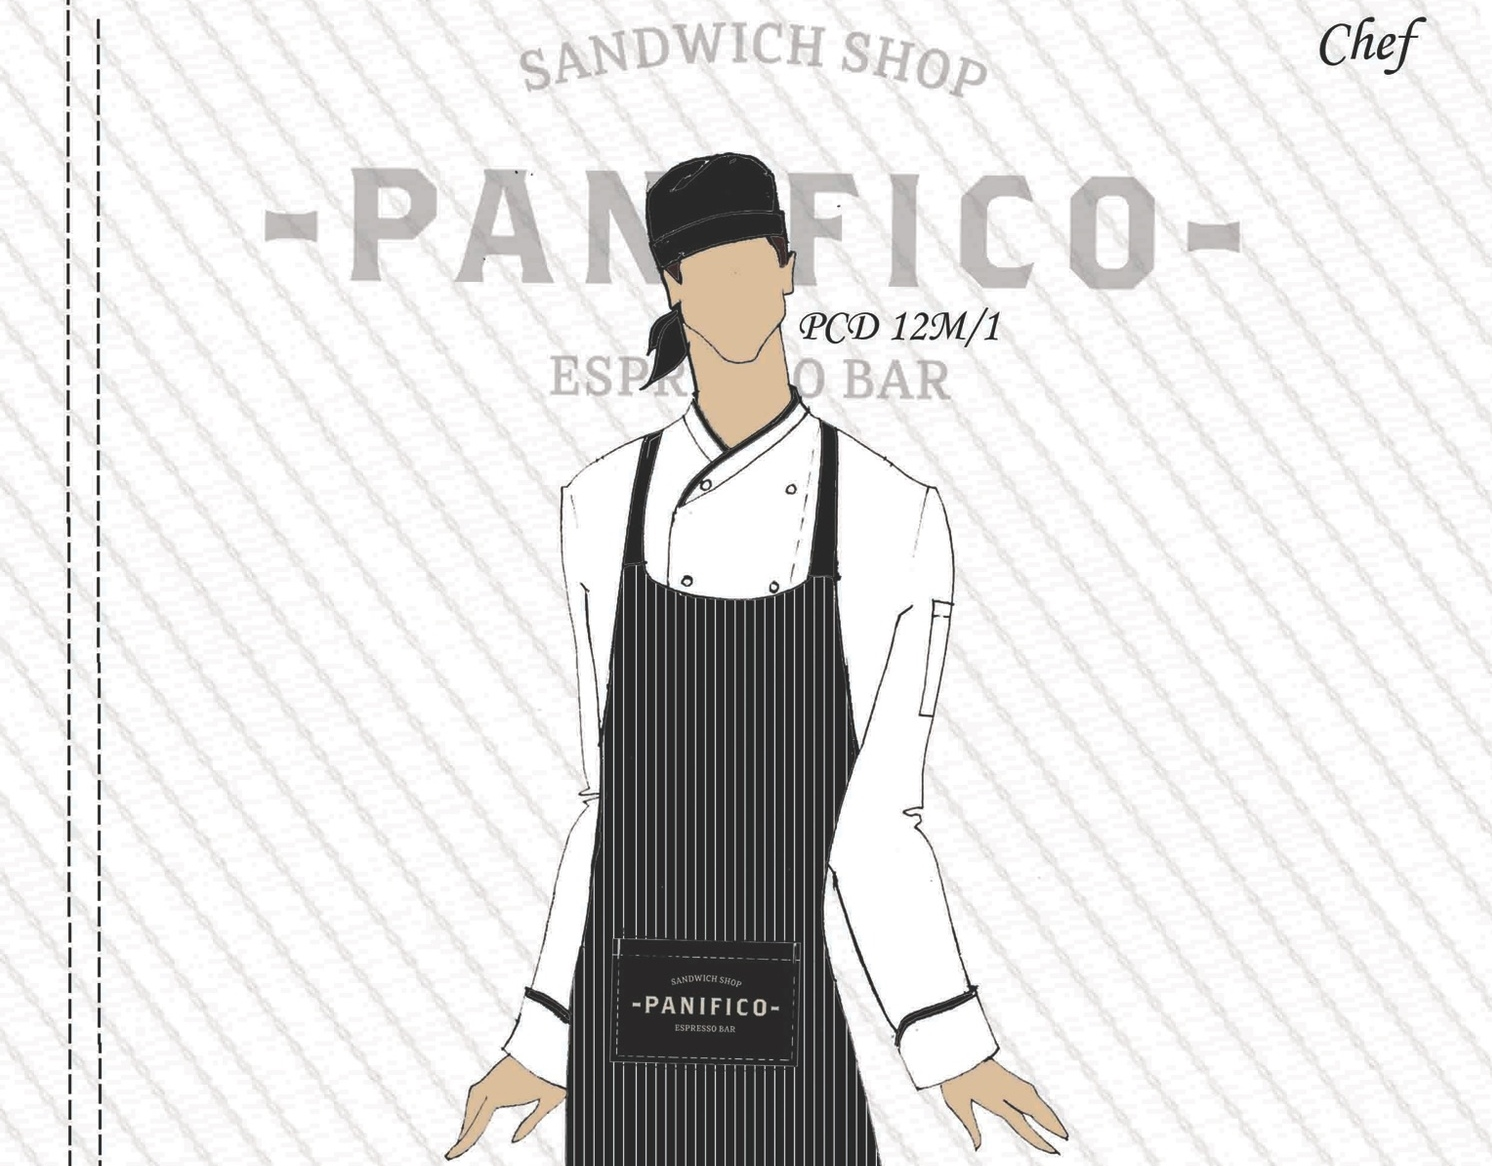 The new Panifico Chef's uniform concept. Going for the classic look!